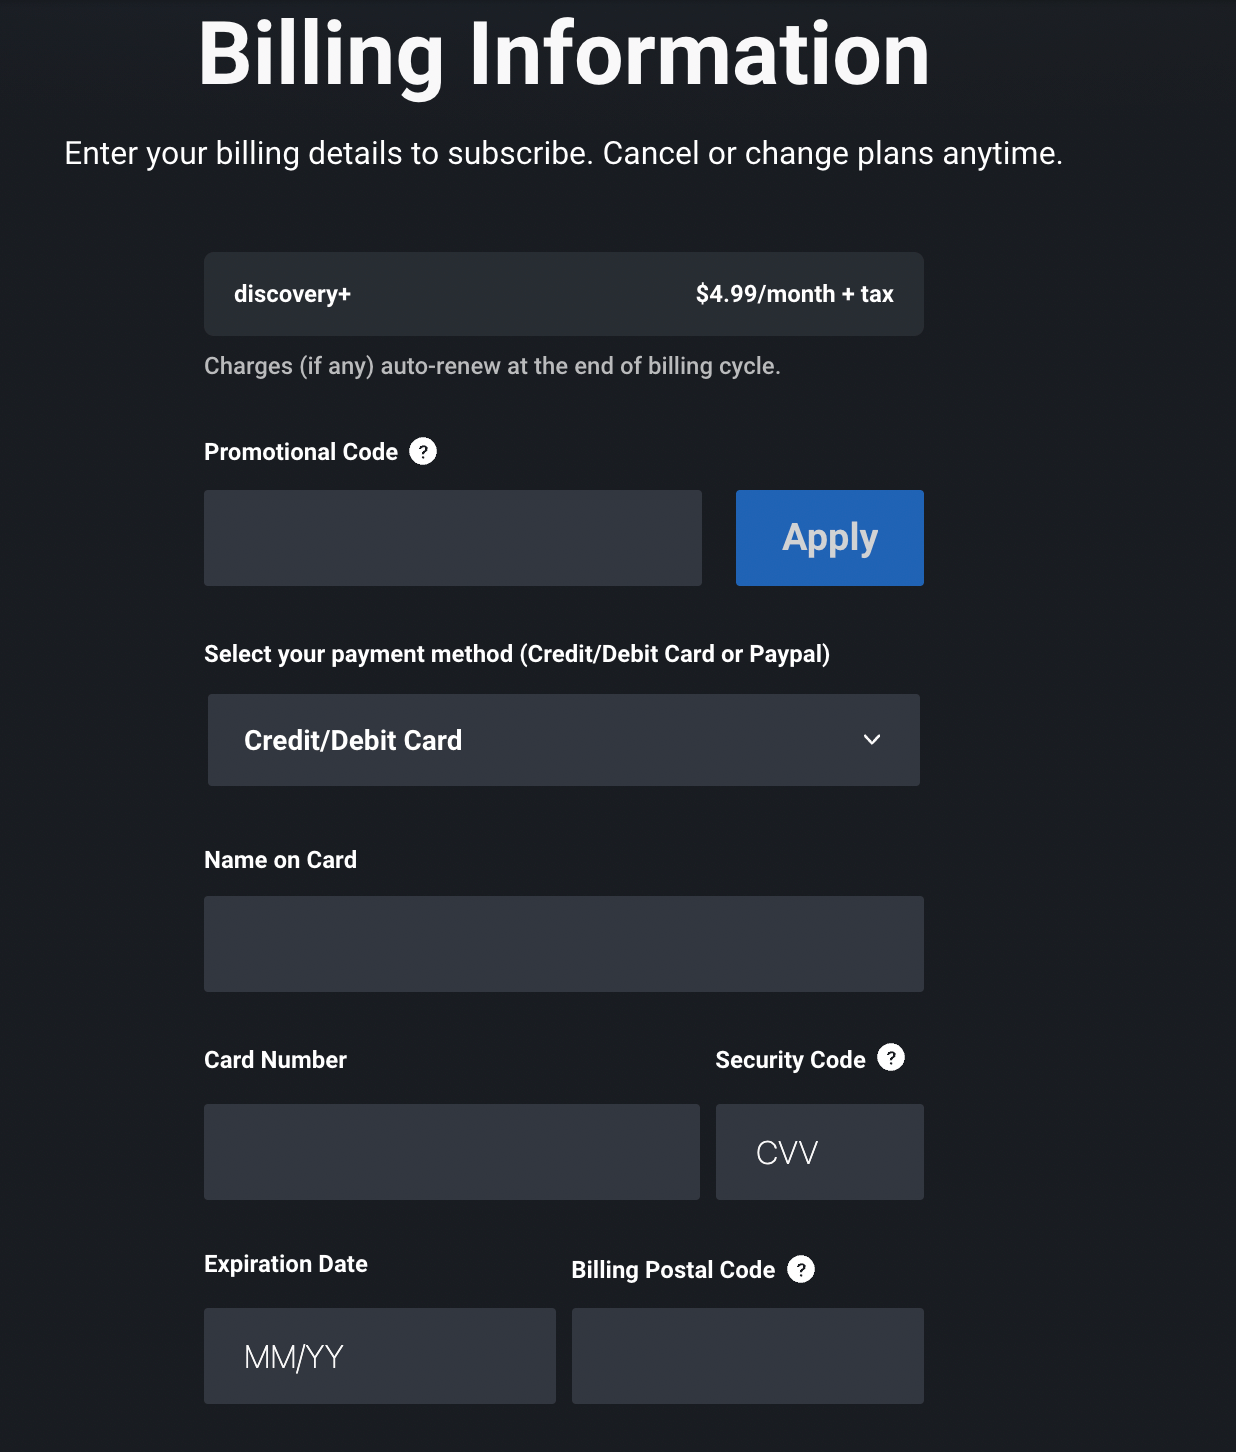 enter all the details to create discovery plus account